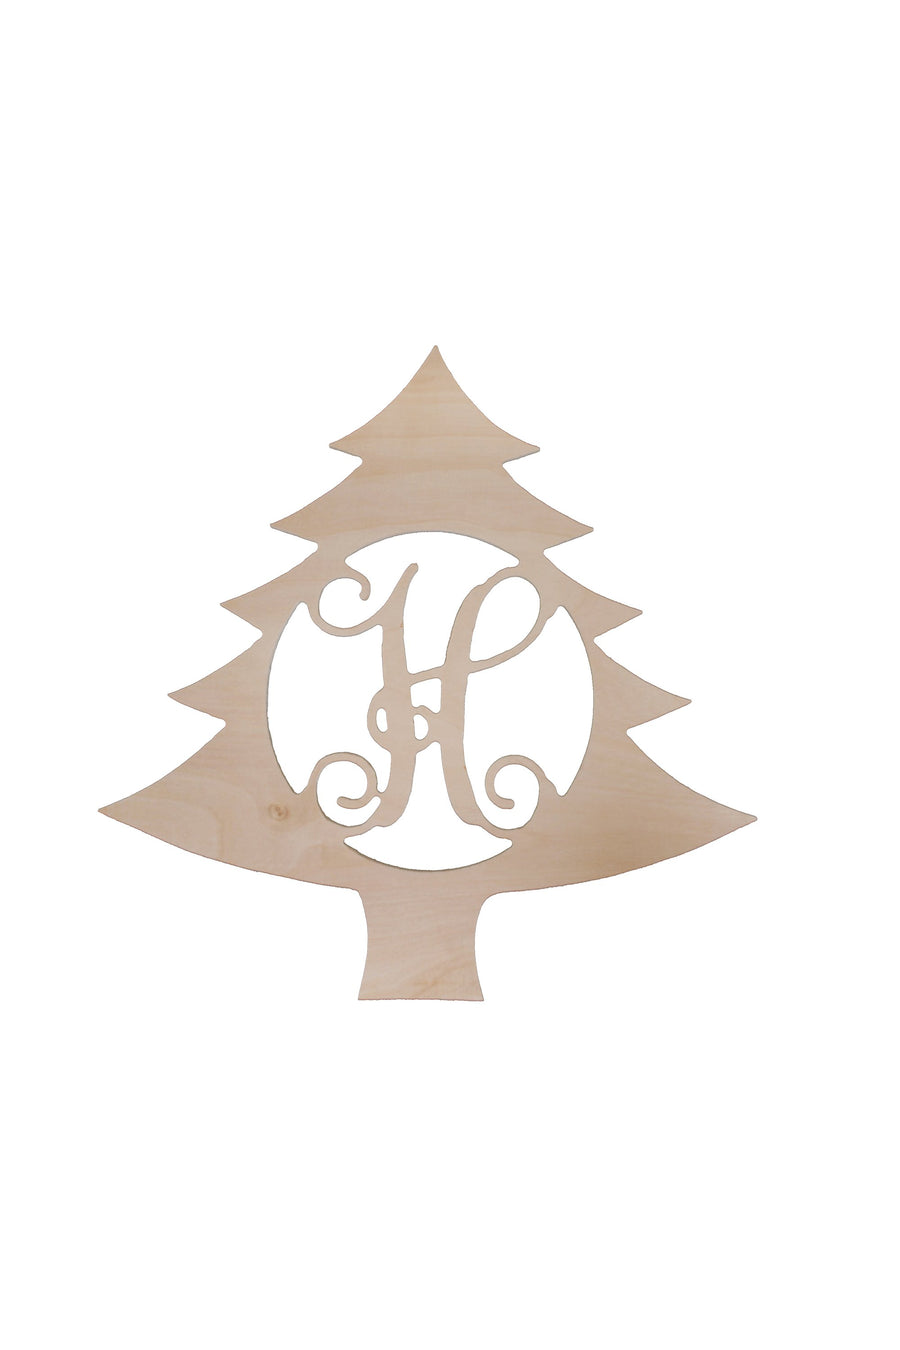 18 in Christmas Tree Wood Monogram, Home, WB, - Sunny and Southern,